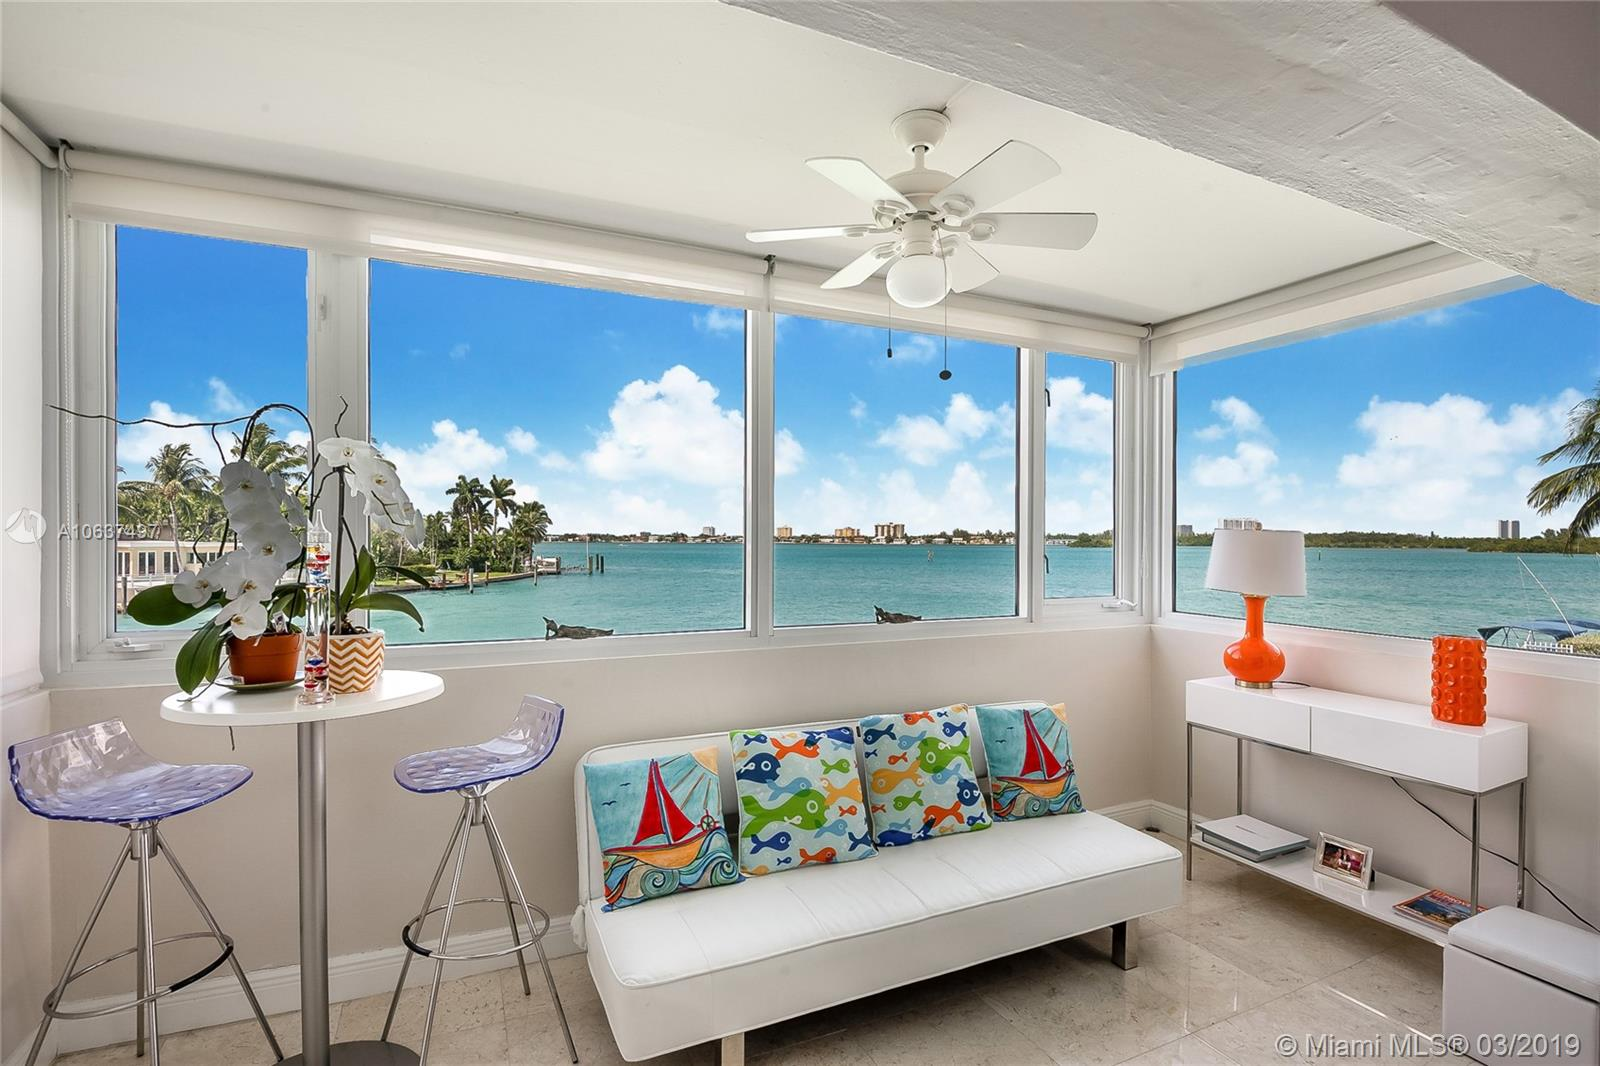 Turnkey unit completely furnished with modern white quality furniture almost new and not being used. Seller has relocated overseas and needs to sell. Fabulous wide bay view from this corner unit with million $ homes at your feet across the canal while overlooking the wide bay and the yachts cruising on the Intracoastal. Feels like living on a boat. Completely remodeled including impact windows. Gorgeous state of the art kitchen with top of the line stainless steel appliances. Marble floors throughout. The large pool is located right next to the dock at the end of the canal with the most beautiful view of the bay. West exposure with incredible sunsets . This is a co-op. Cash only. No rental allowed. No pets. Walk to the beach and the world famous luxury Bal Harbor shops!   Stunning unit.